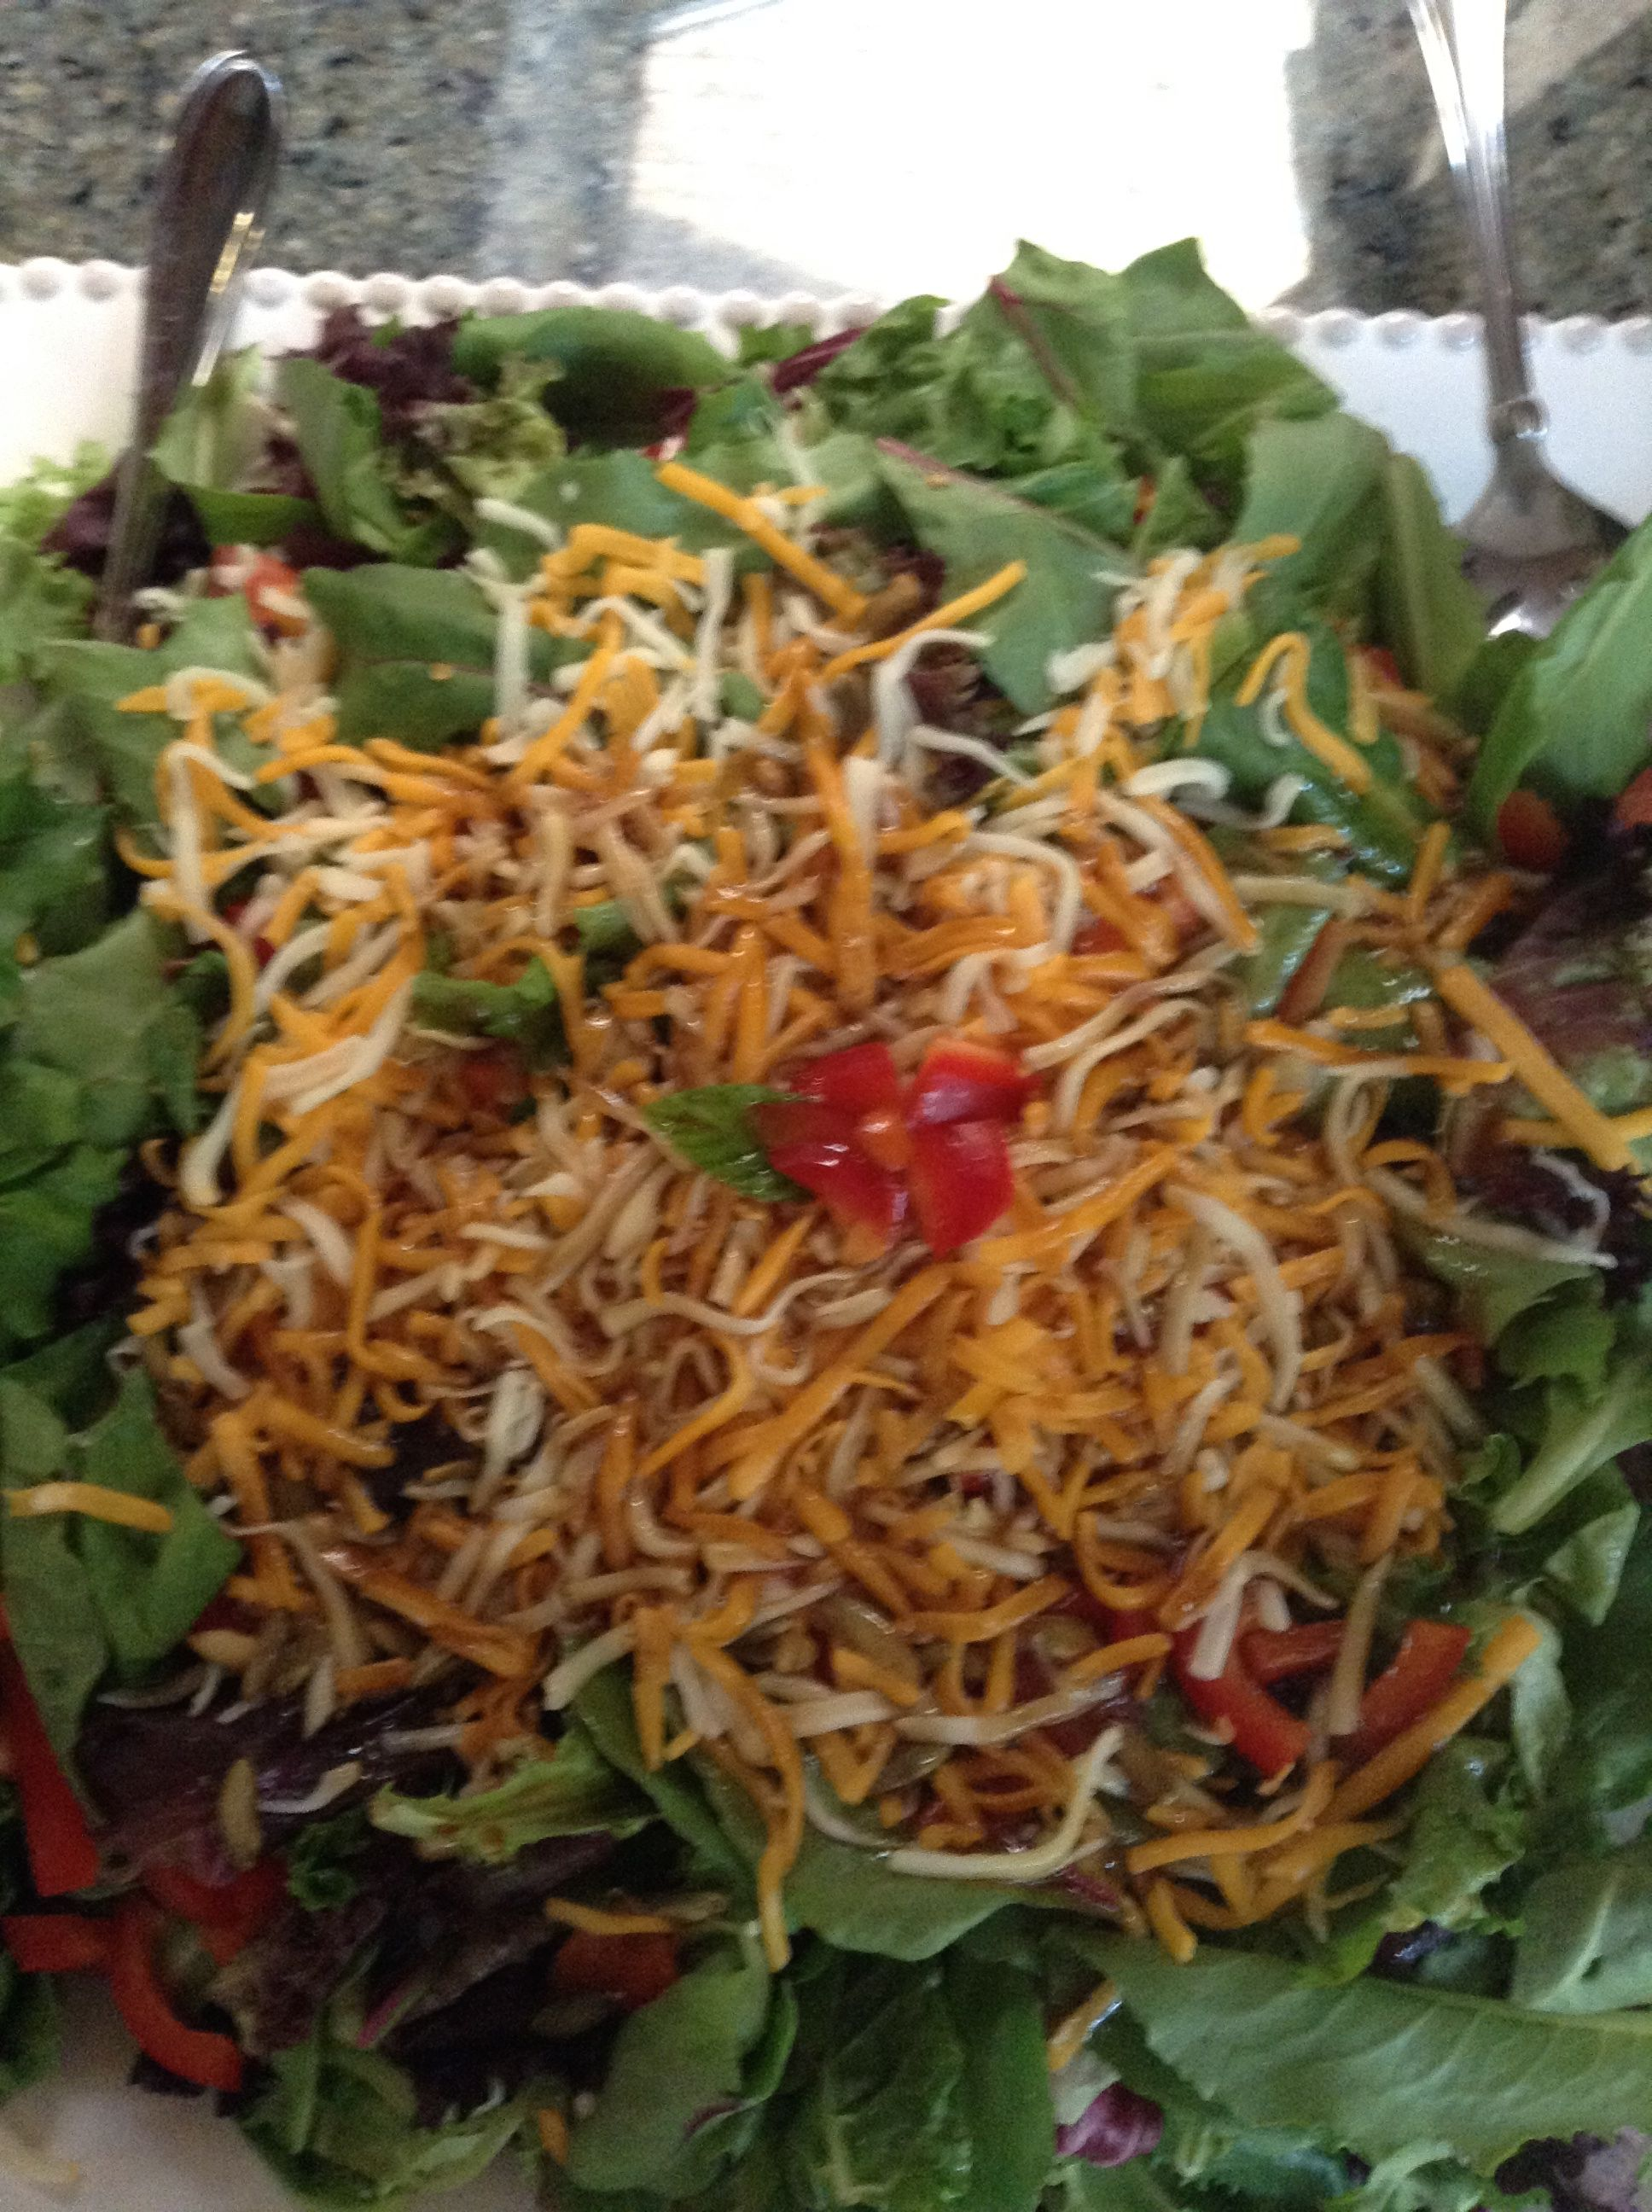 nothing like a nice salad add your own toppings be creative!!!